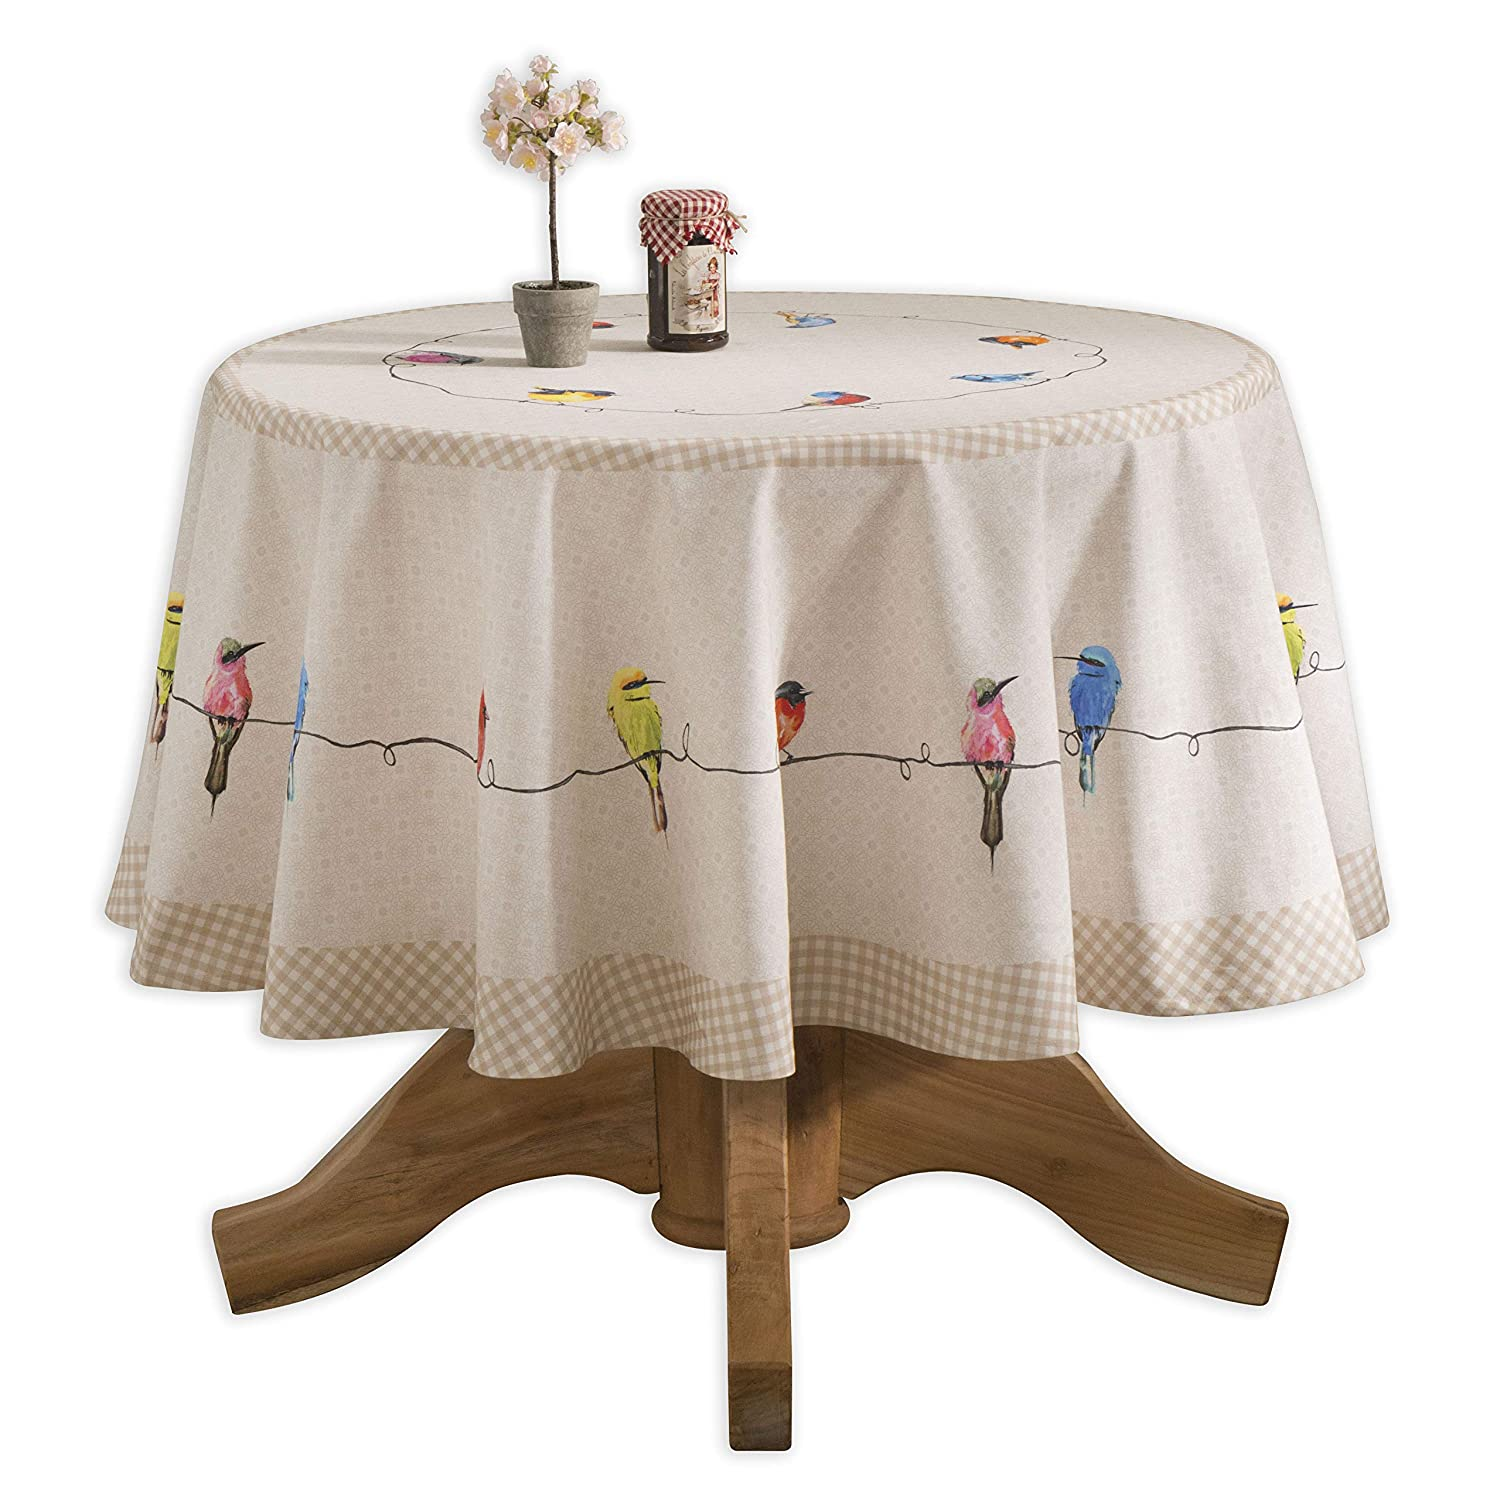 Maison d' Hermine Birdies On Wire100% Cotton Tablecloth 54 - inch by 54 - inch. Maison d' Hermine FBA_B01CJCRH98